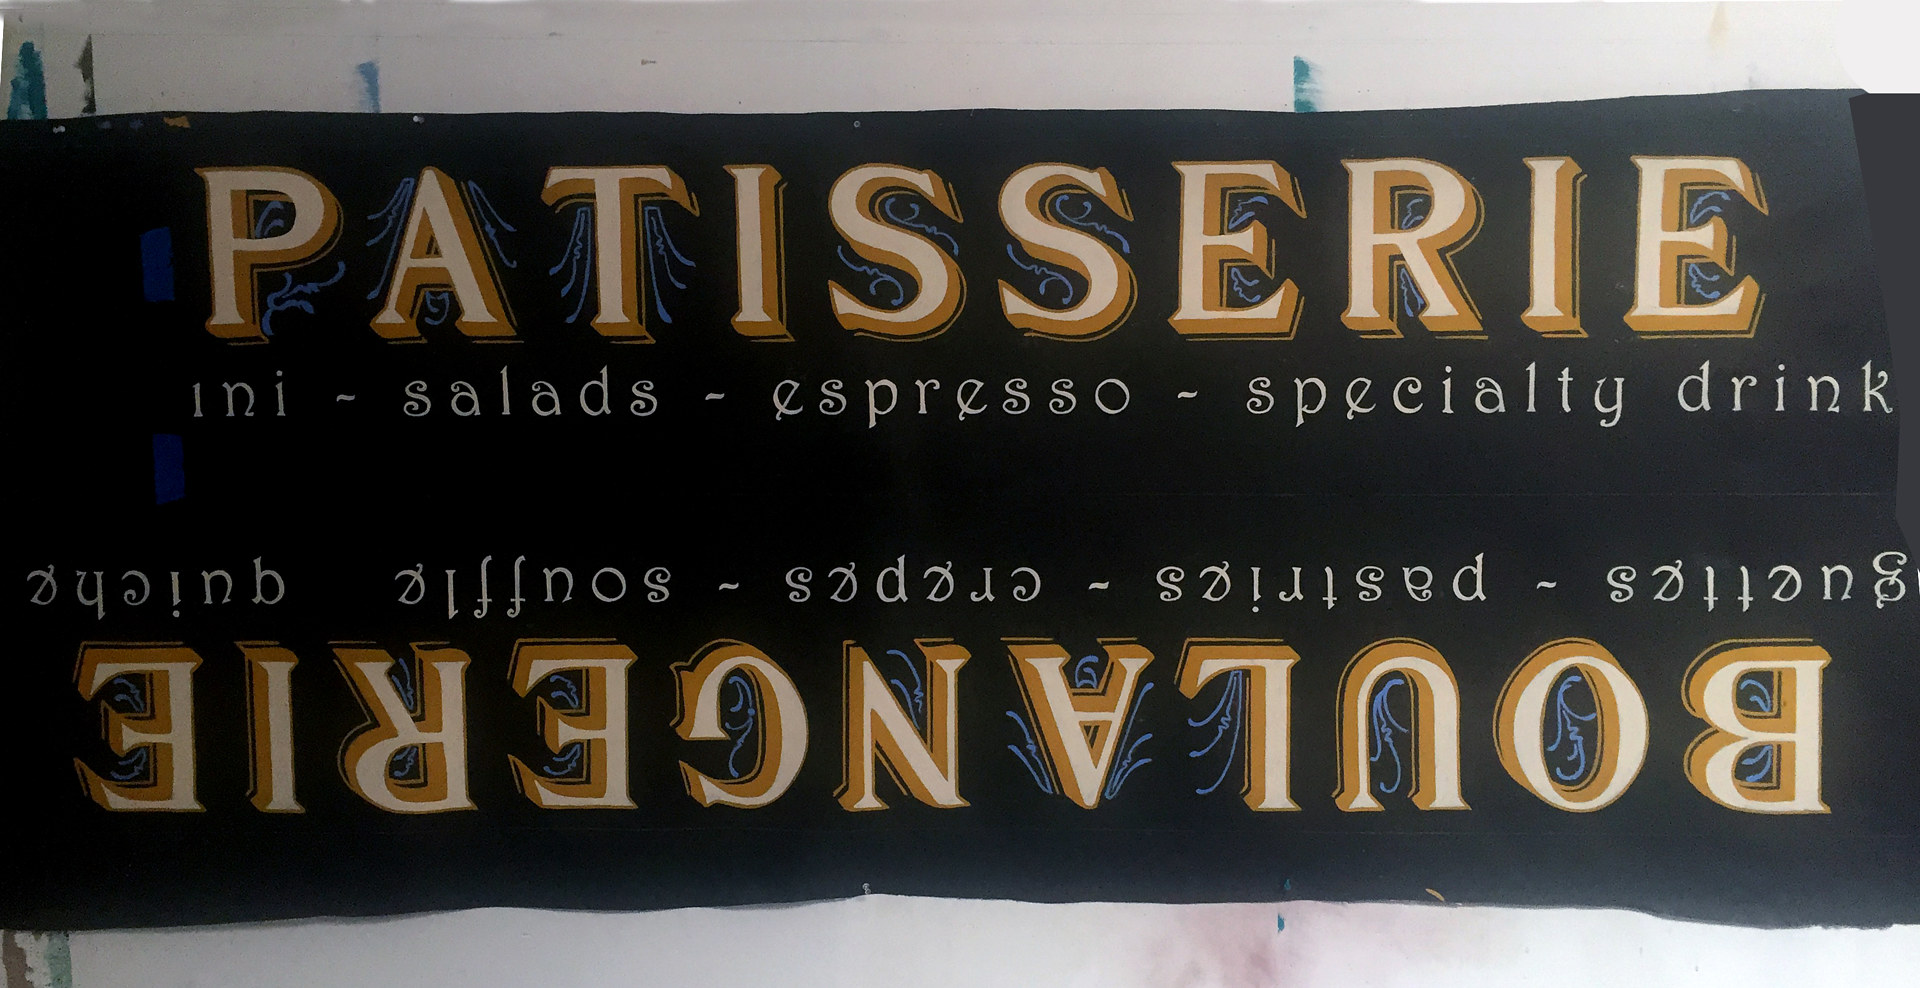 French Cafe Signage by Robert Milling